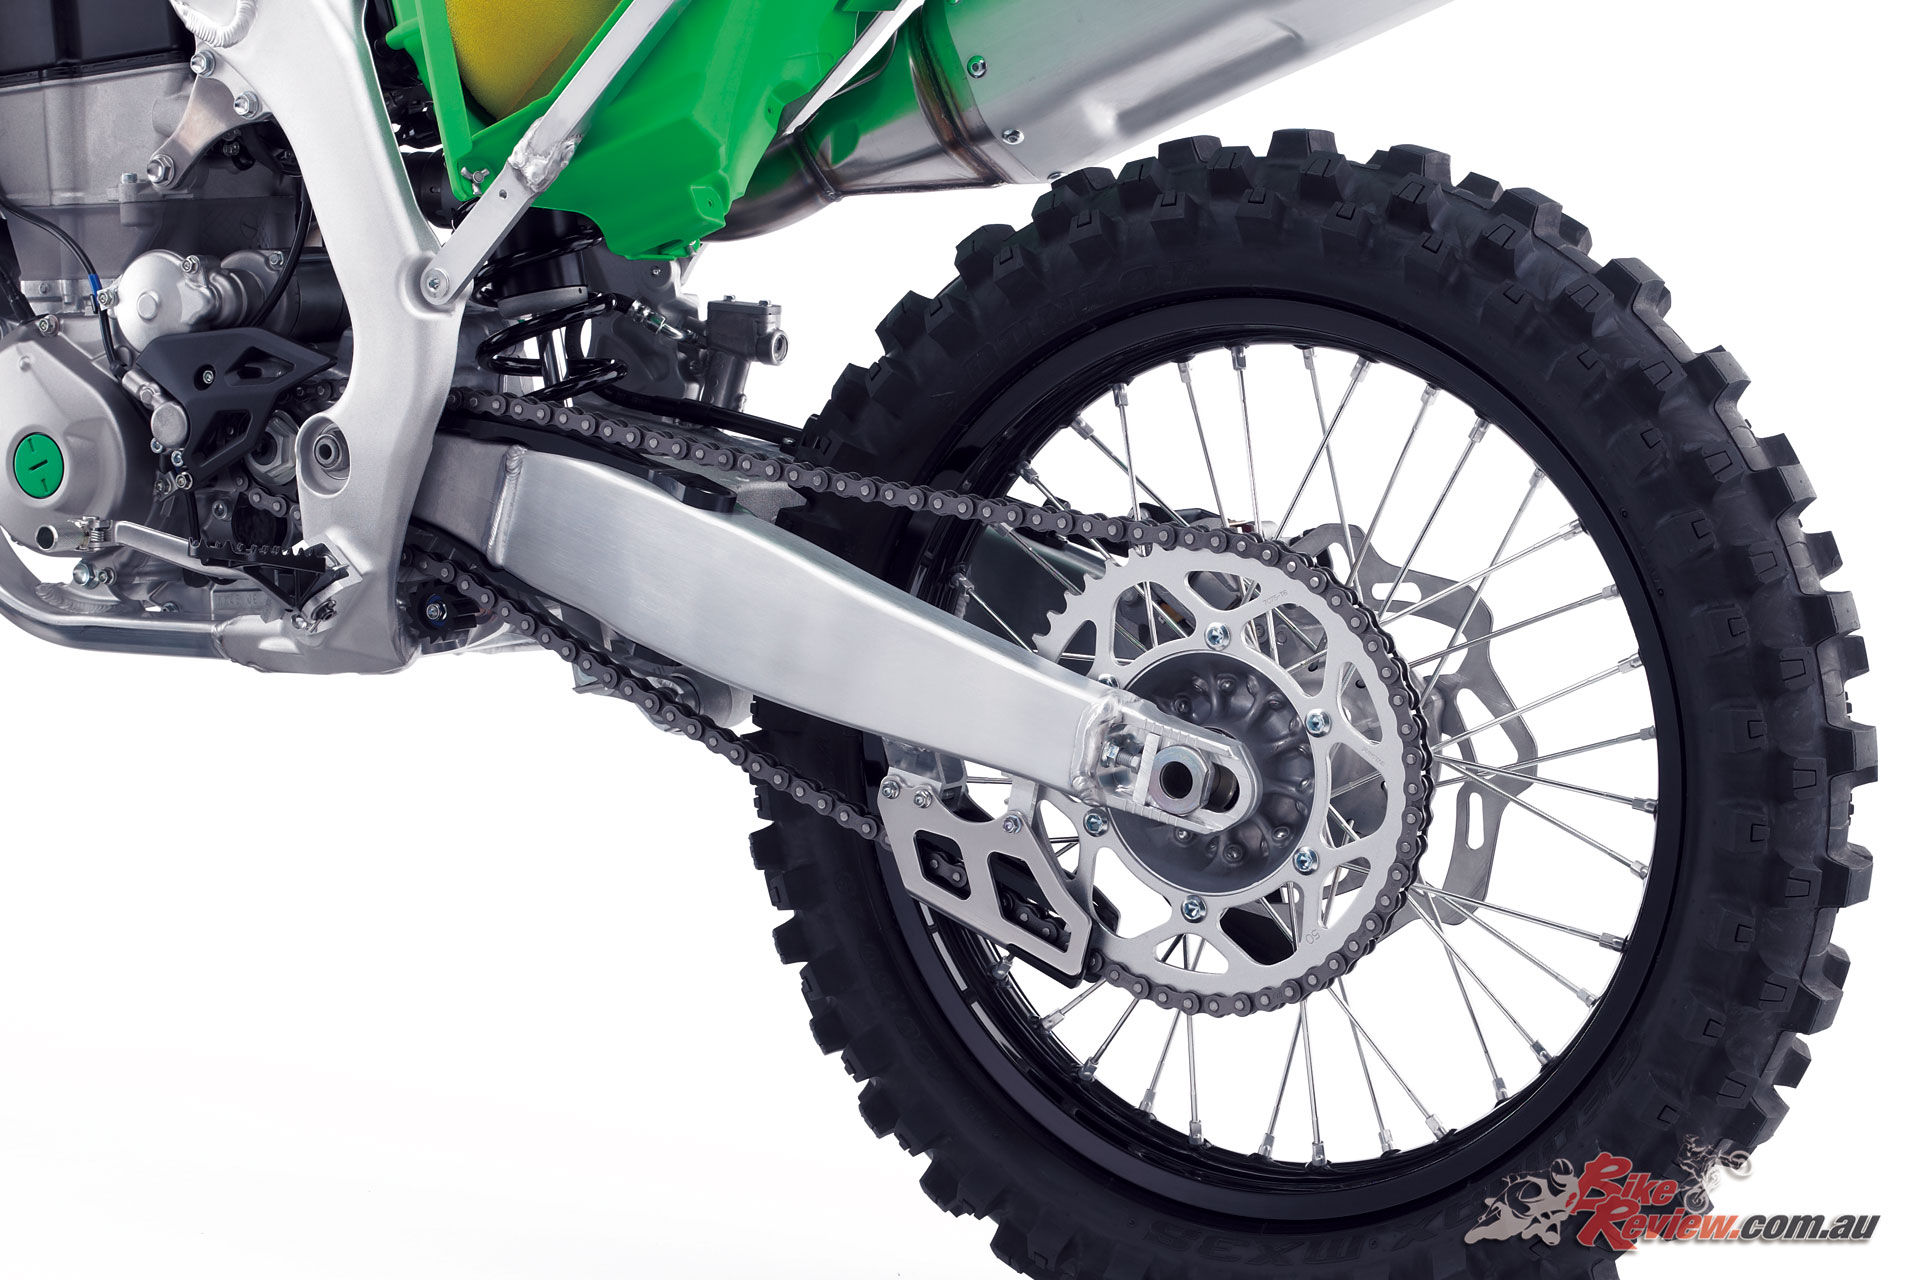 The swingarm on the KX450 has also been revised, with a new Uni-Trak shock, while a 250mm rear petal rotor offers plentiful power